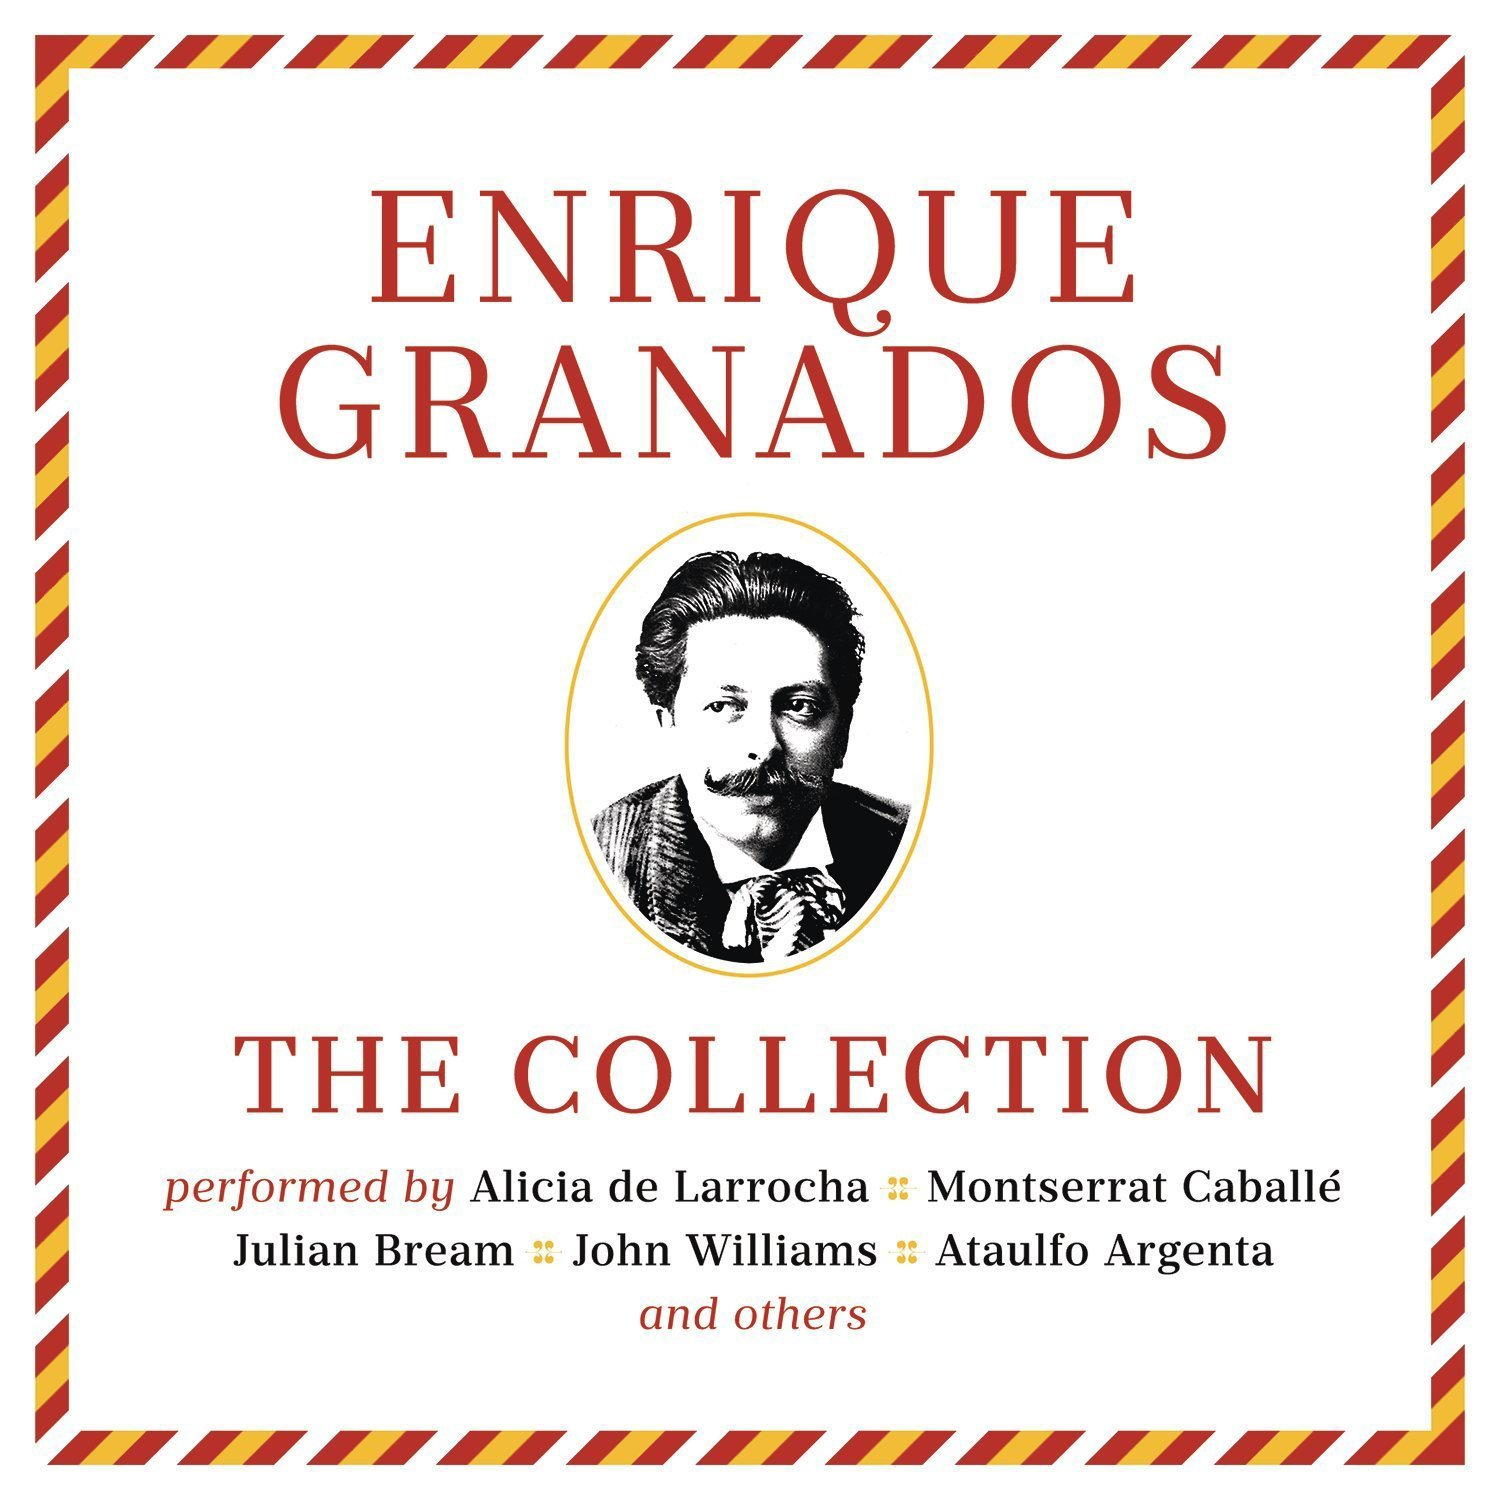 Enrique Granados; The Collection Sony (7CDs)